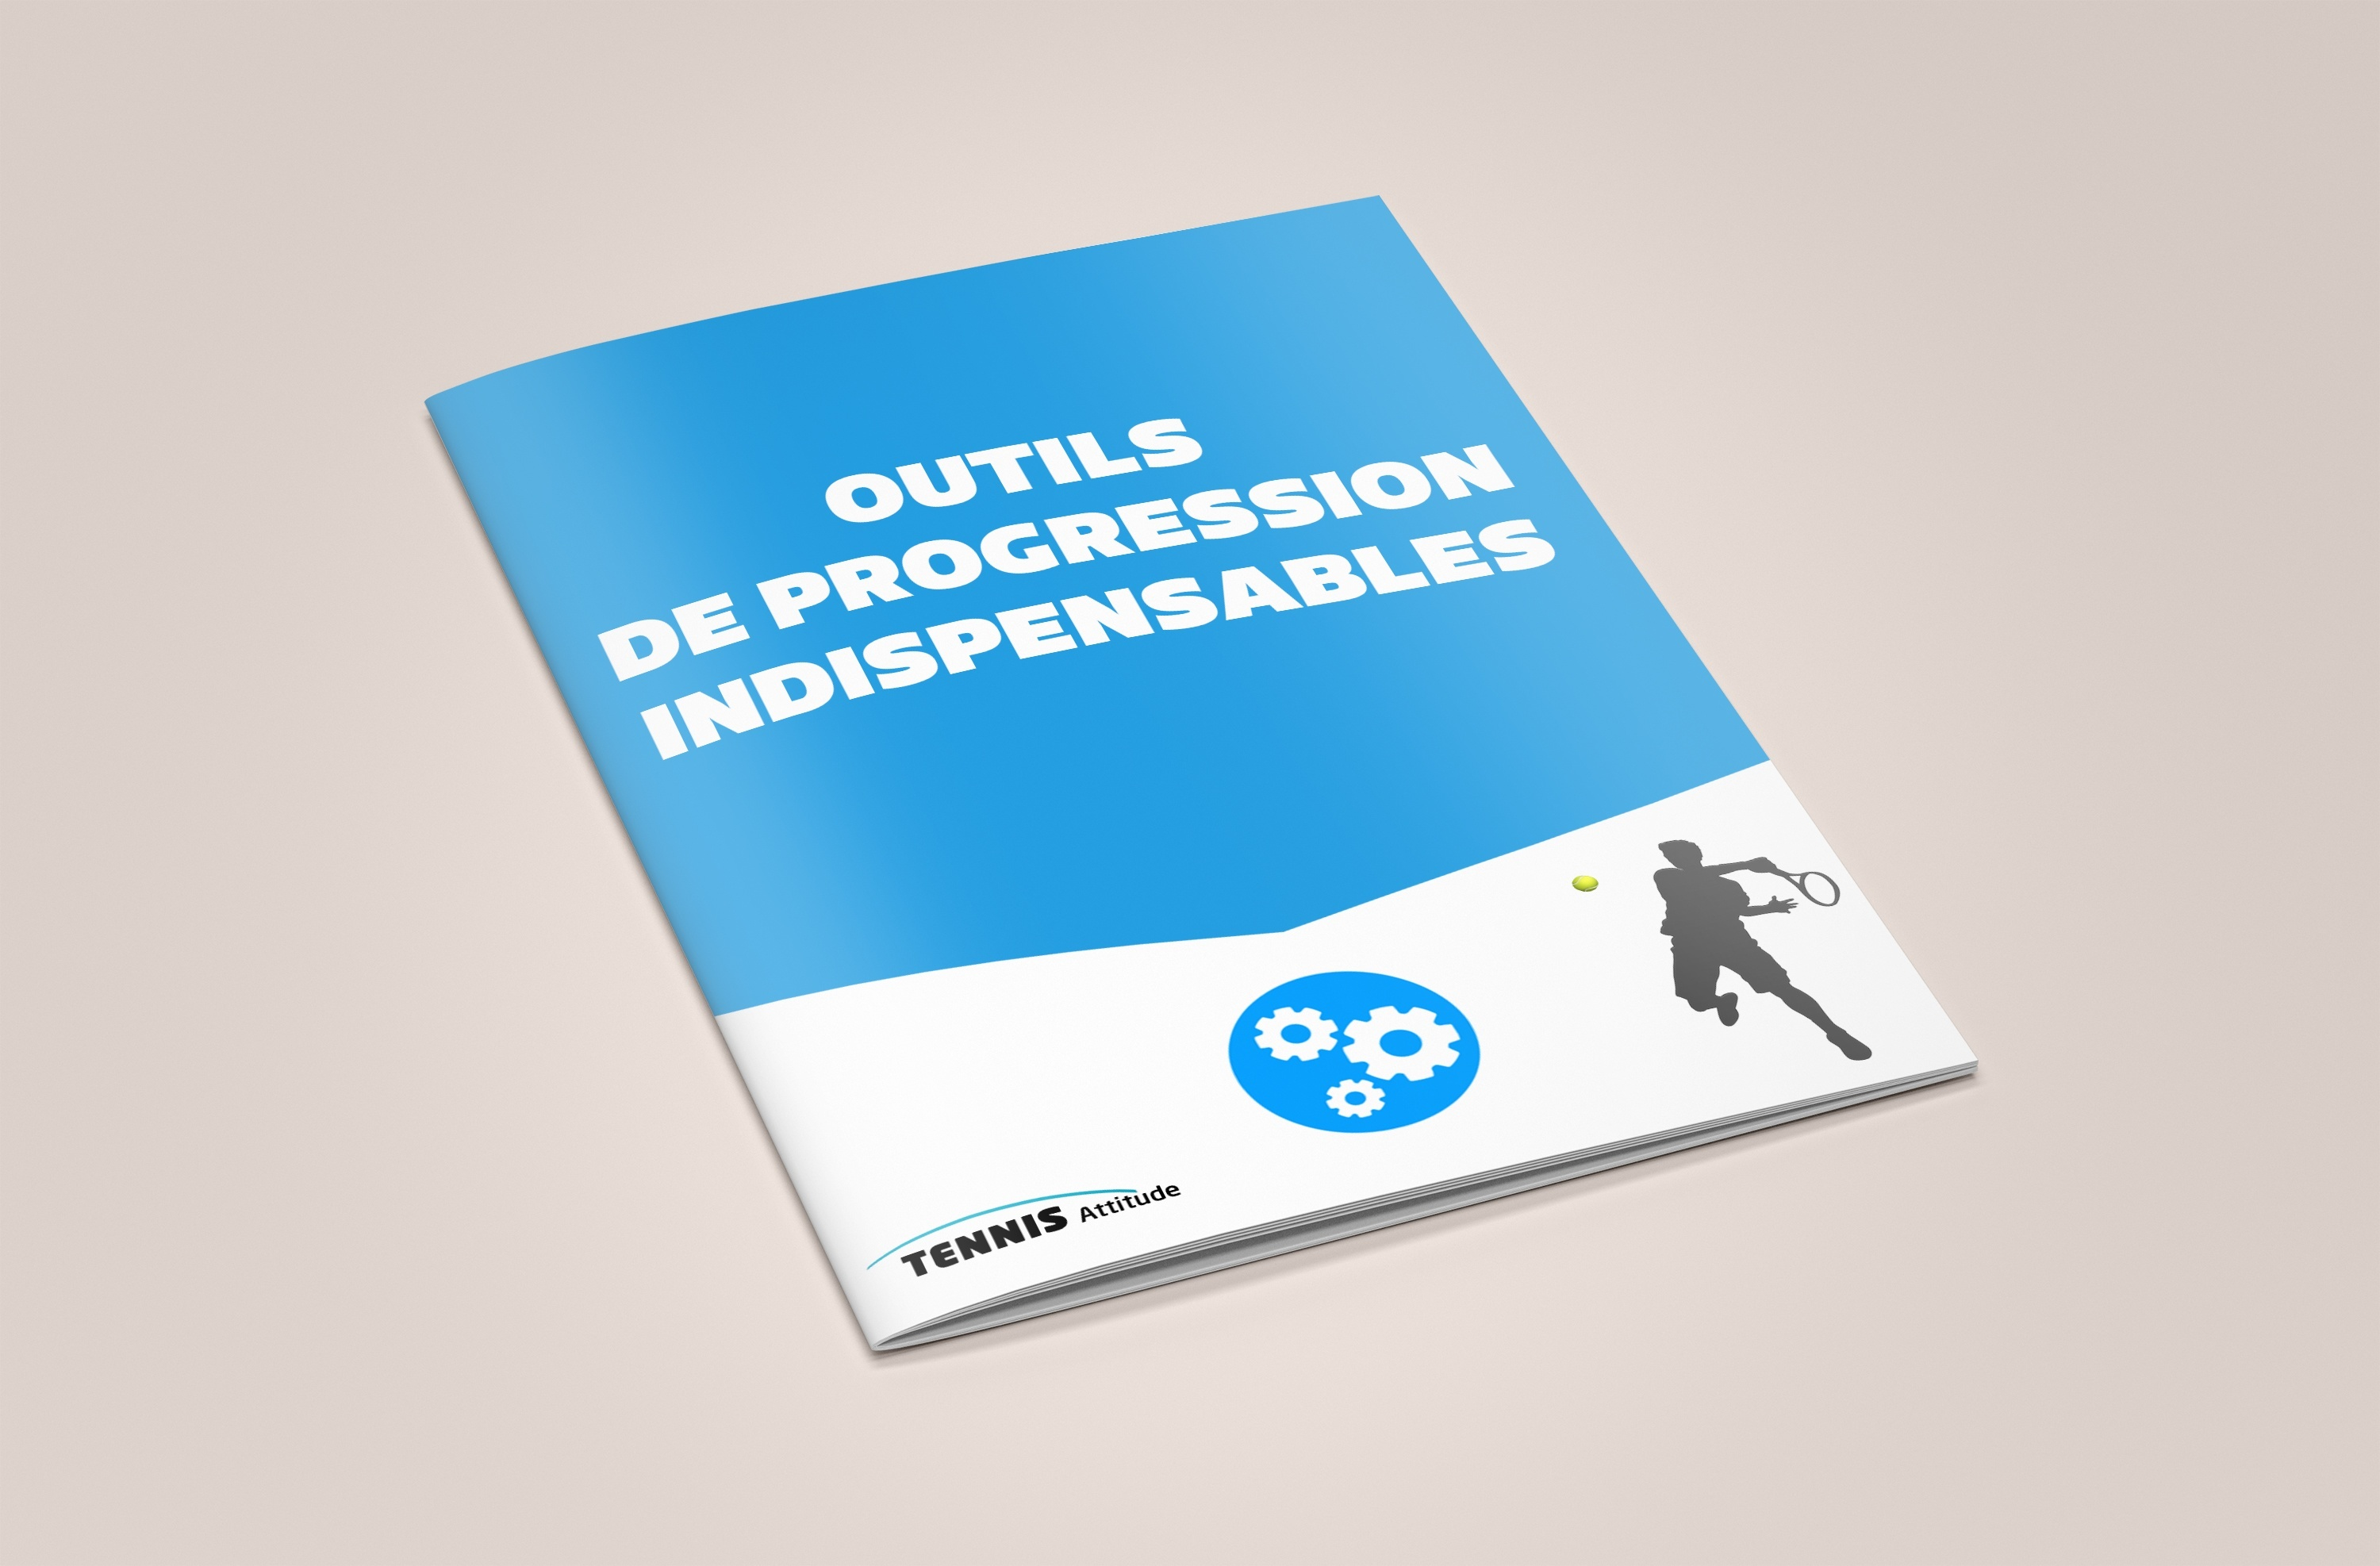 OUTILS DE PROGRESSION INDISPENSABLES